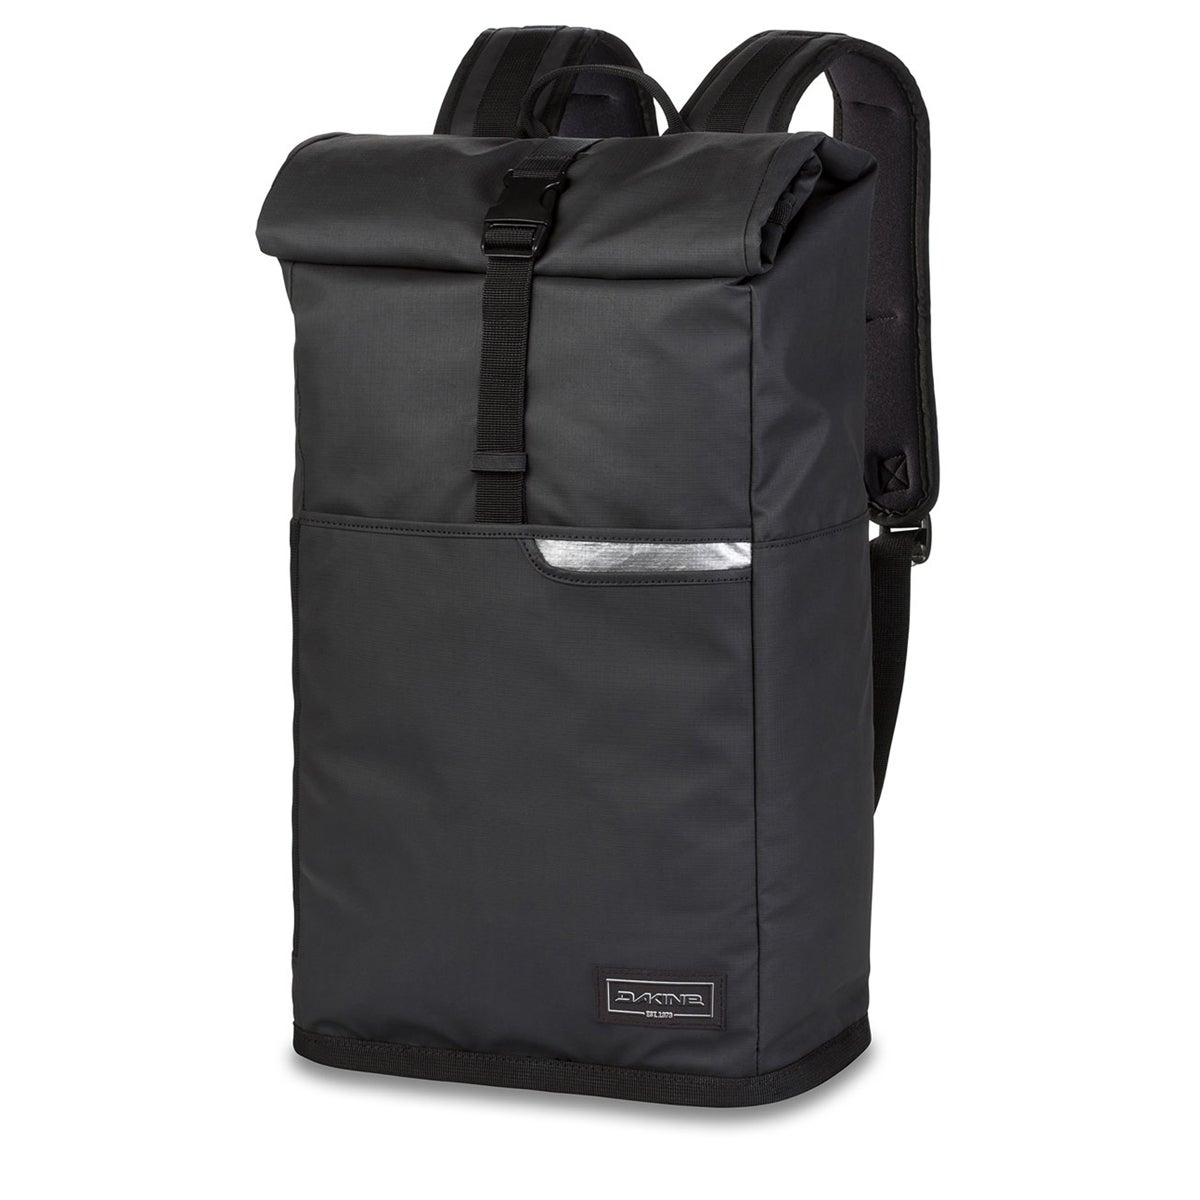 Dakine Section Roll Top Wet Dry 28L Surf Backpack - Squall